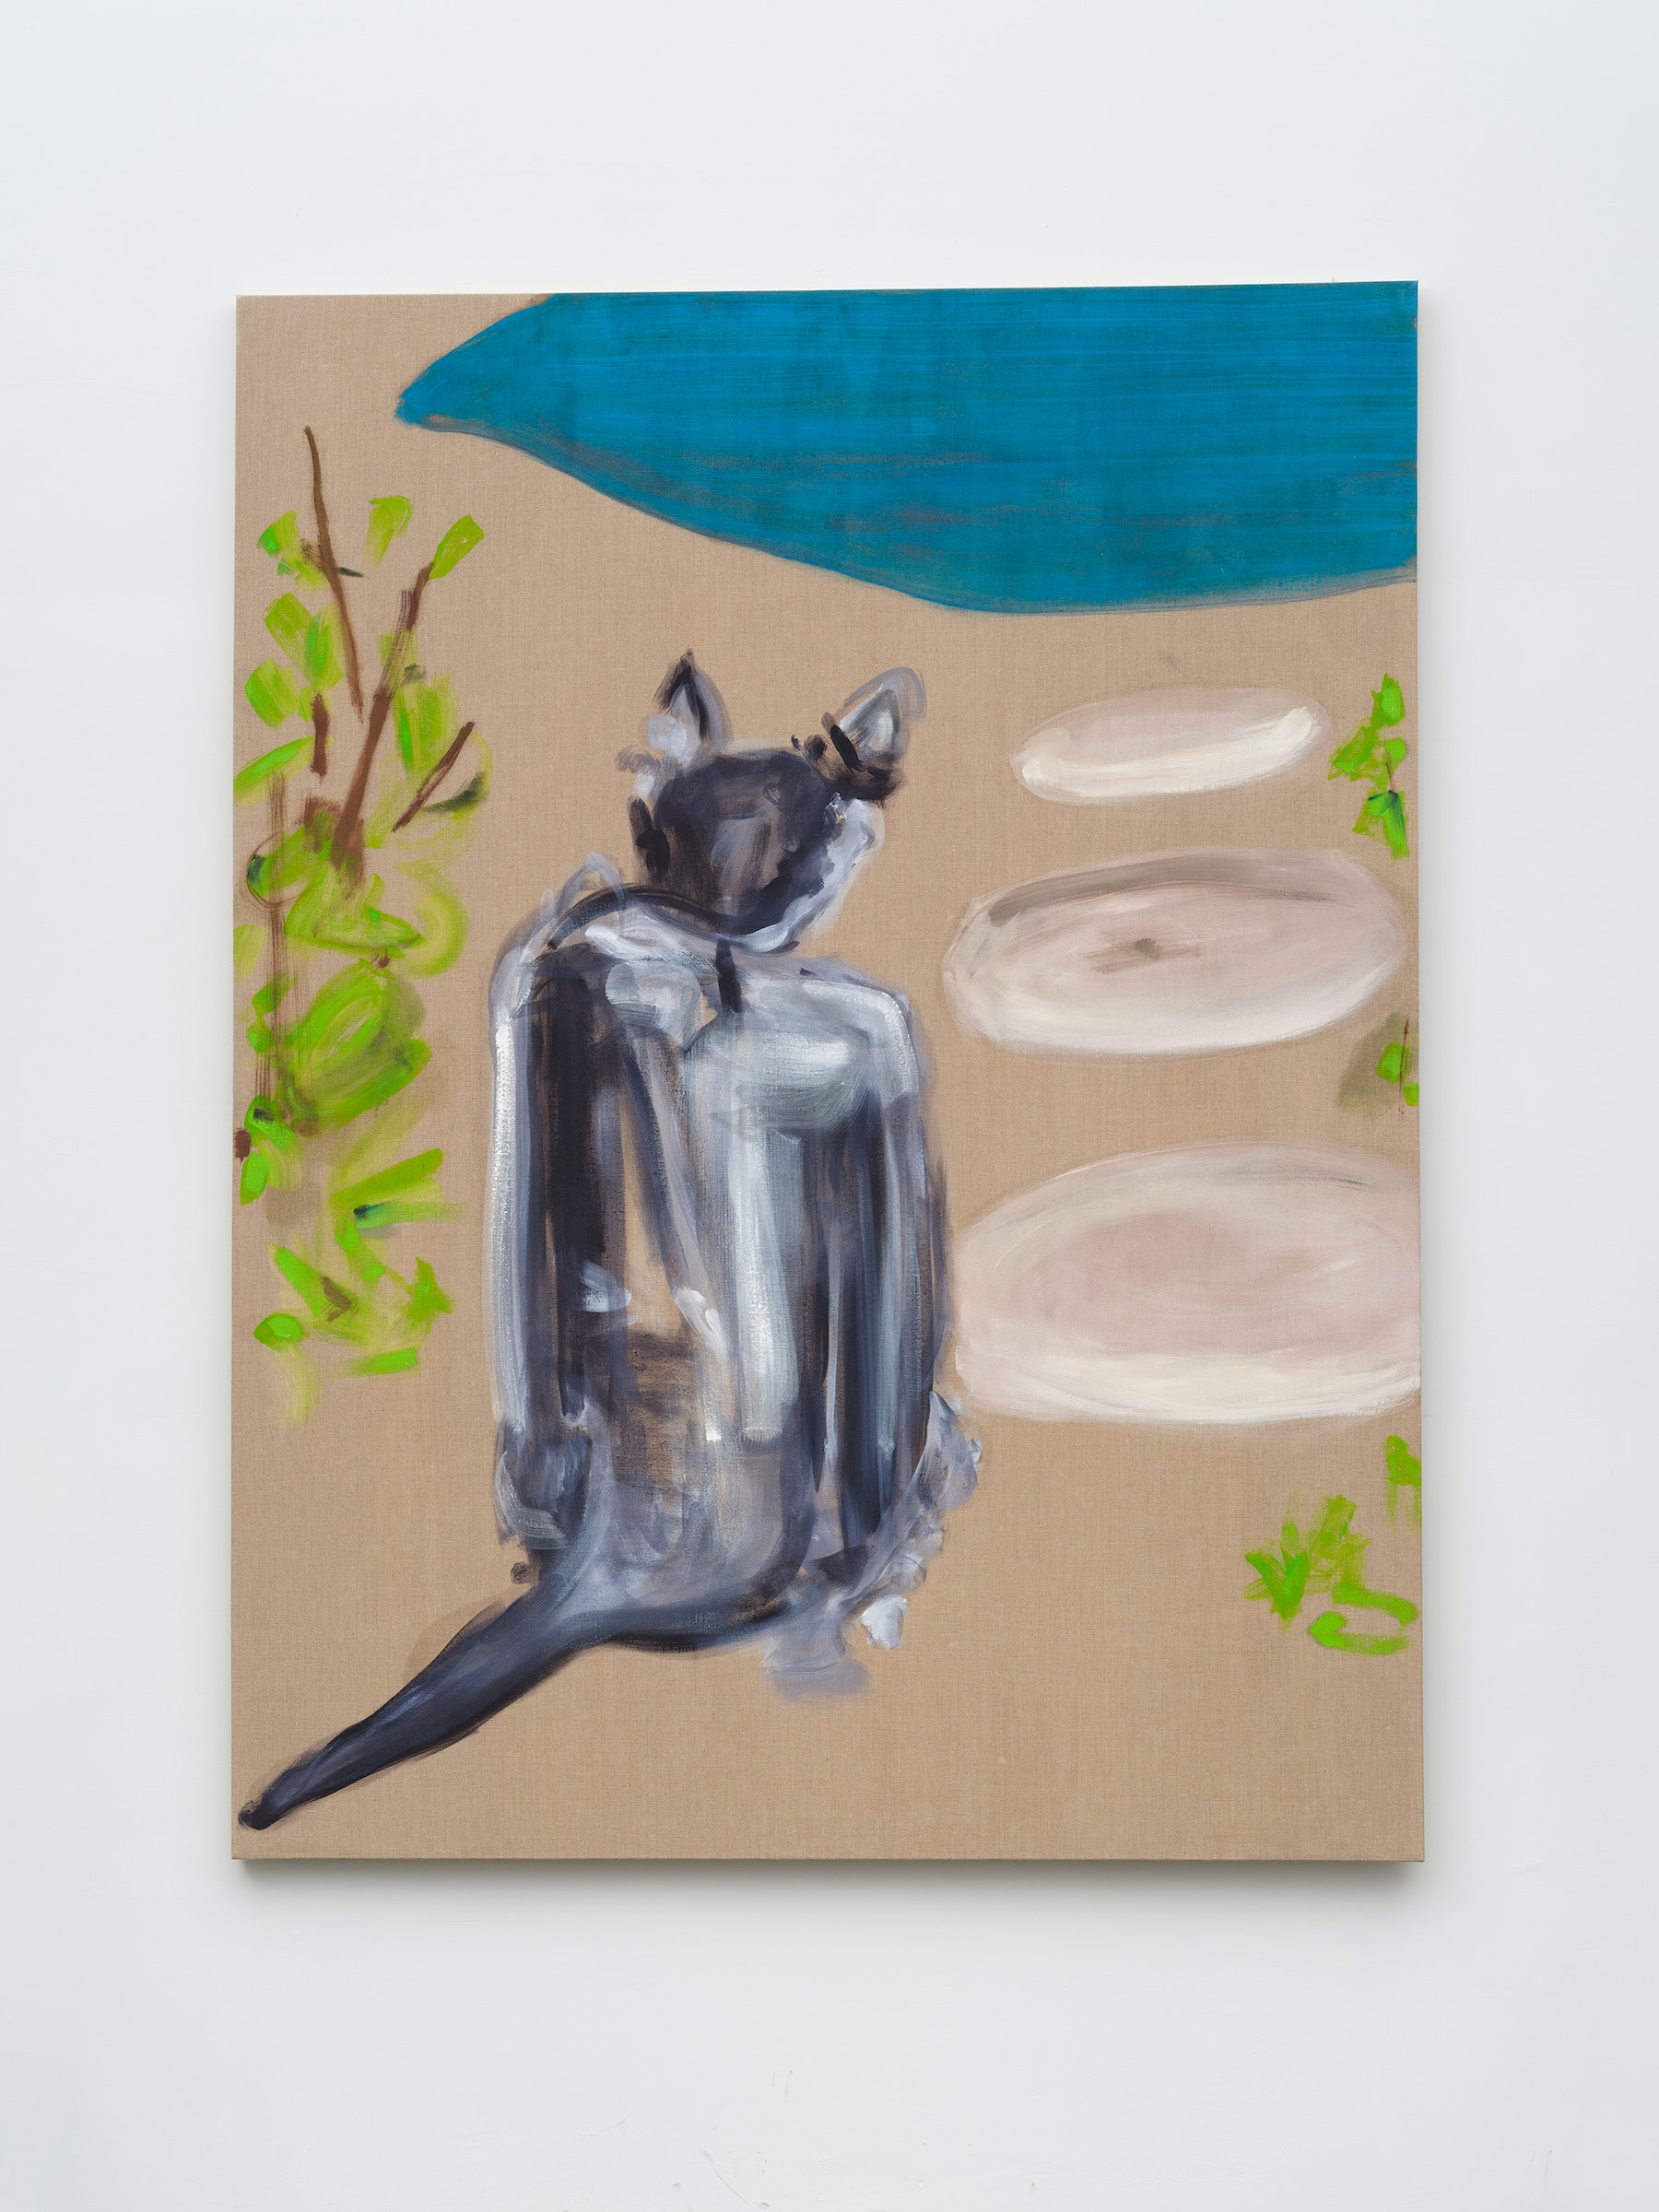 """Monique Van Genderen """"Lou at the Pool,"""" 2019 Oil on linen 90"""" x 68"""" [HxW] (228.6 x 172.72 cm) Inventory #VGE410 Courtesy of the artist and Vielmetter Los Angeles Photo credit: Jeff McLane"""